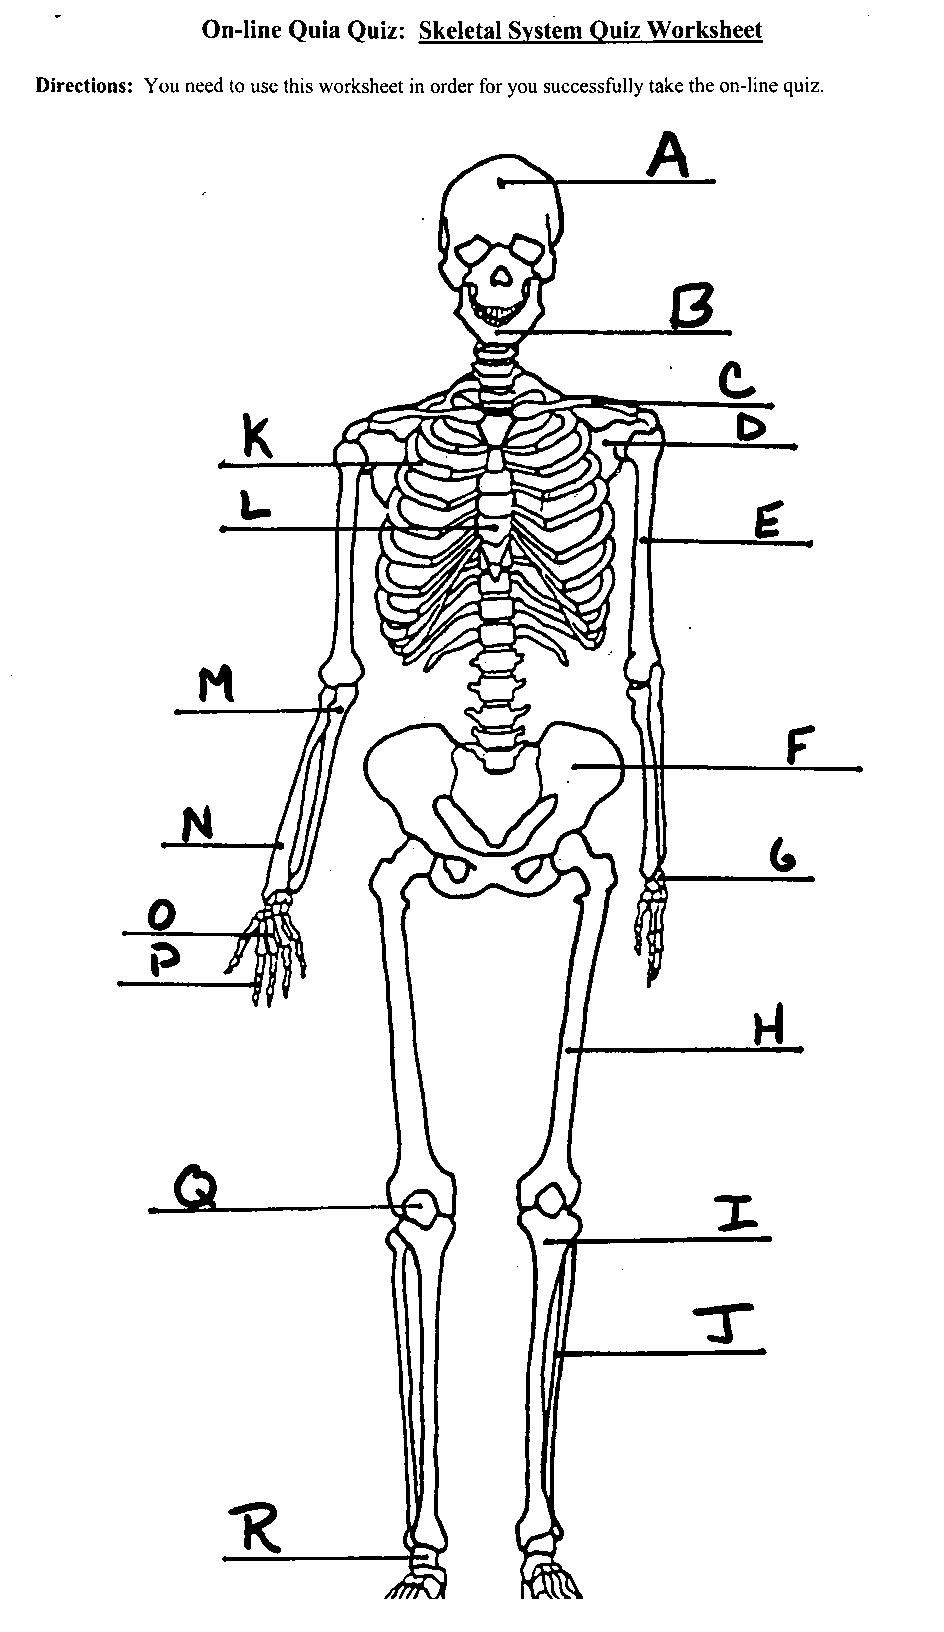 worksheet Skeletal System Fill In The Blank Worksheet image result for skeletal system labeled human skeleton labeled